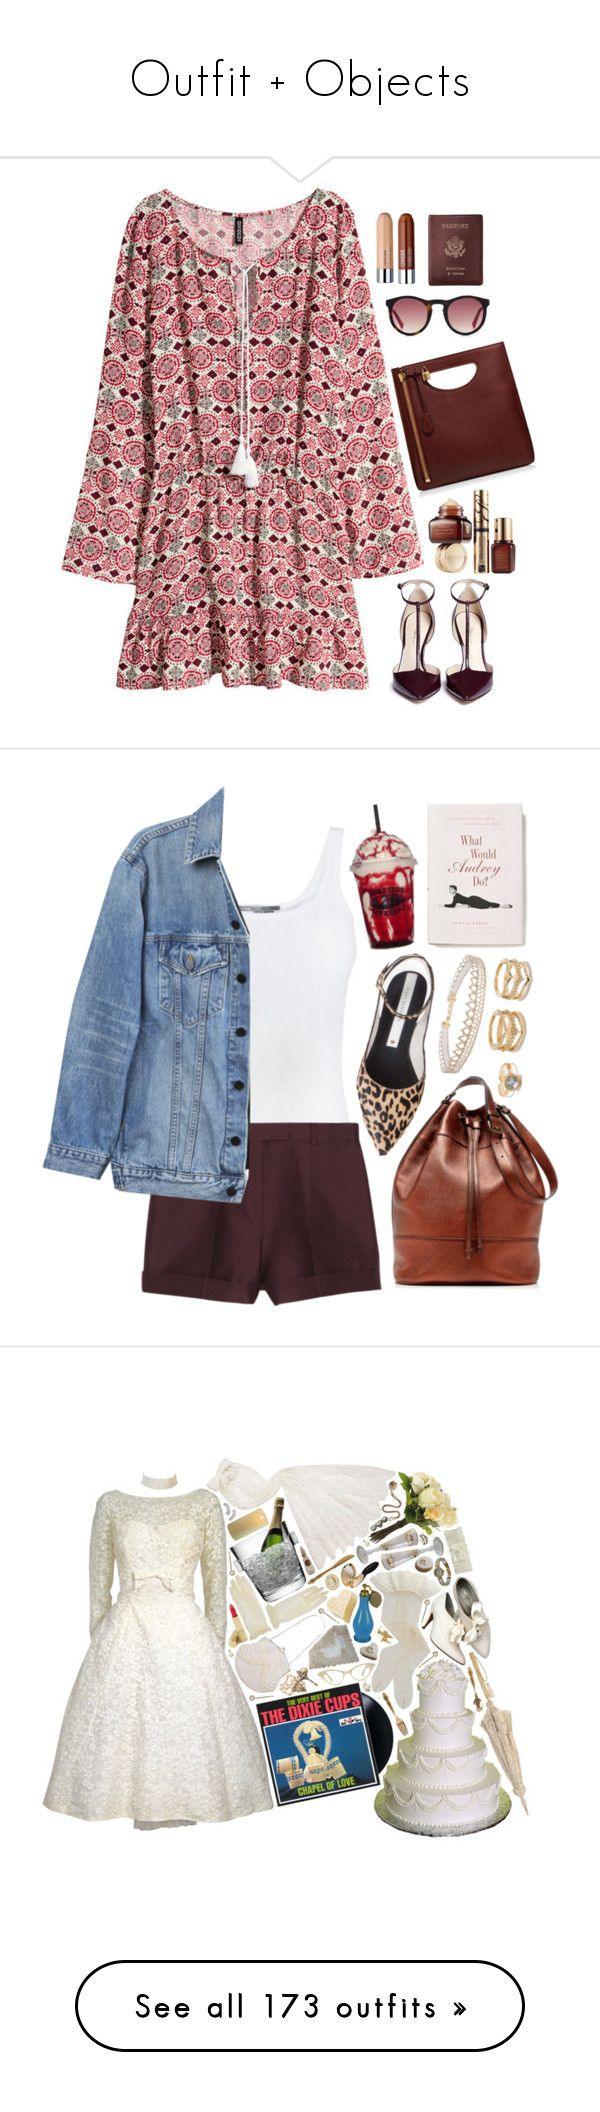 """""""Outfit + Objects"""" by jzanzig on Polyvore featuring H&M, 3.1 Phillip Lim, HOOK LDN, Estée Lauder, Royce Leather, Alix, red, dress, shoes and dresses"""